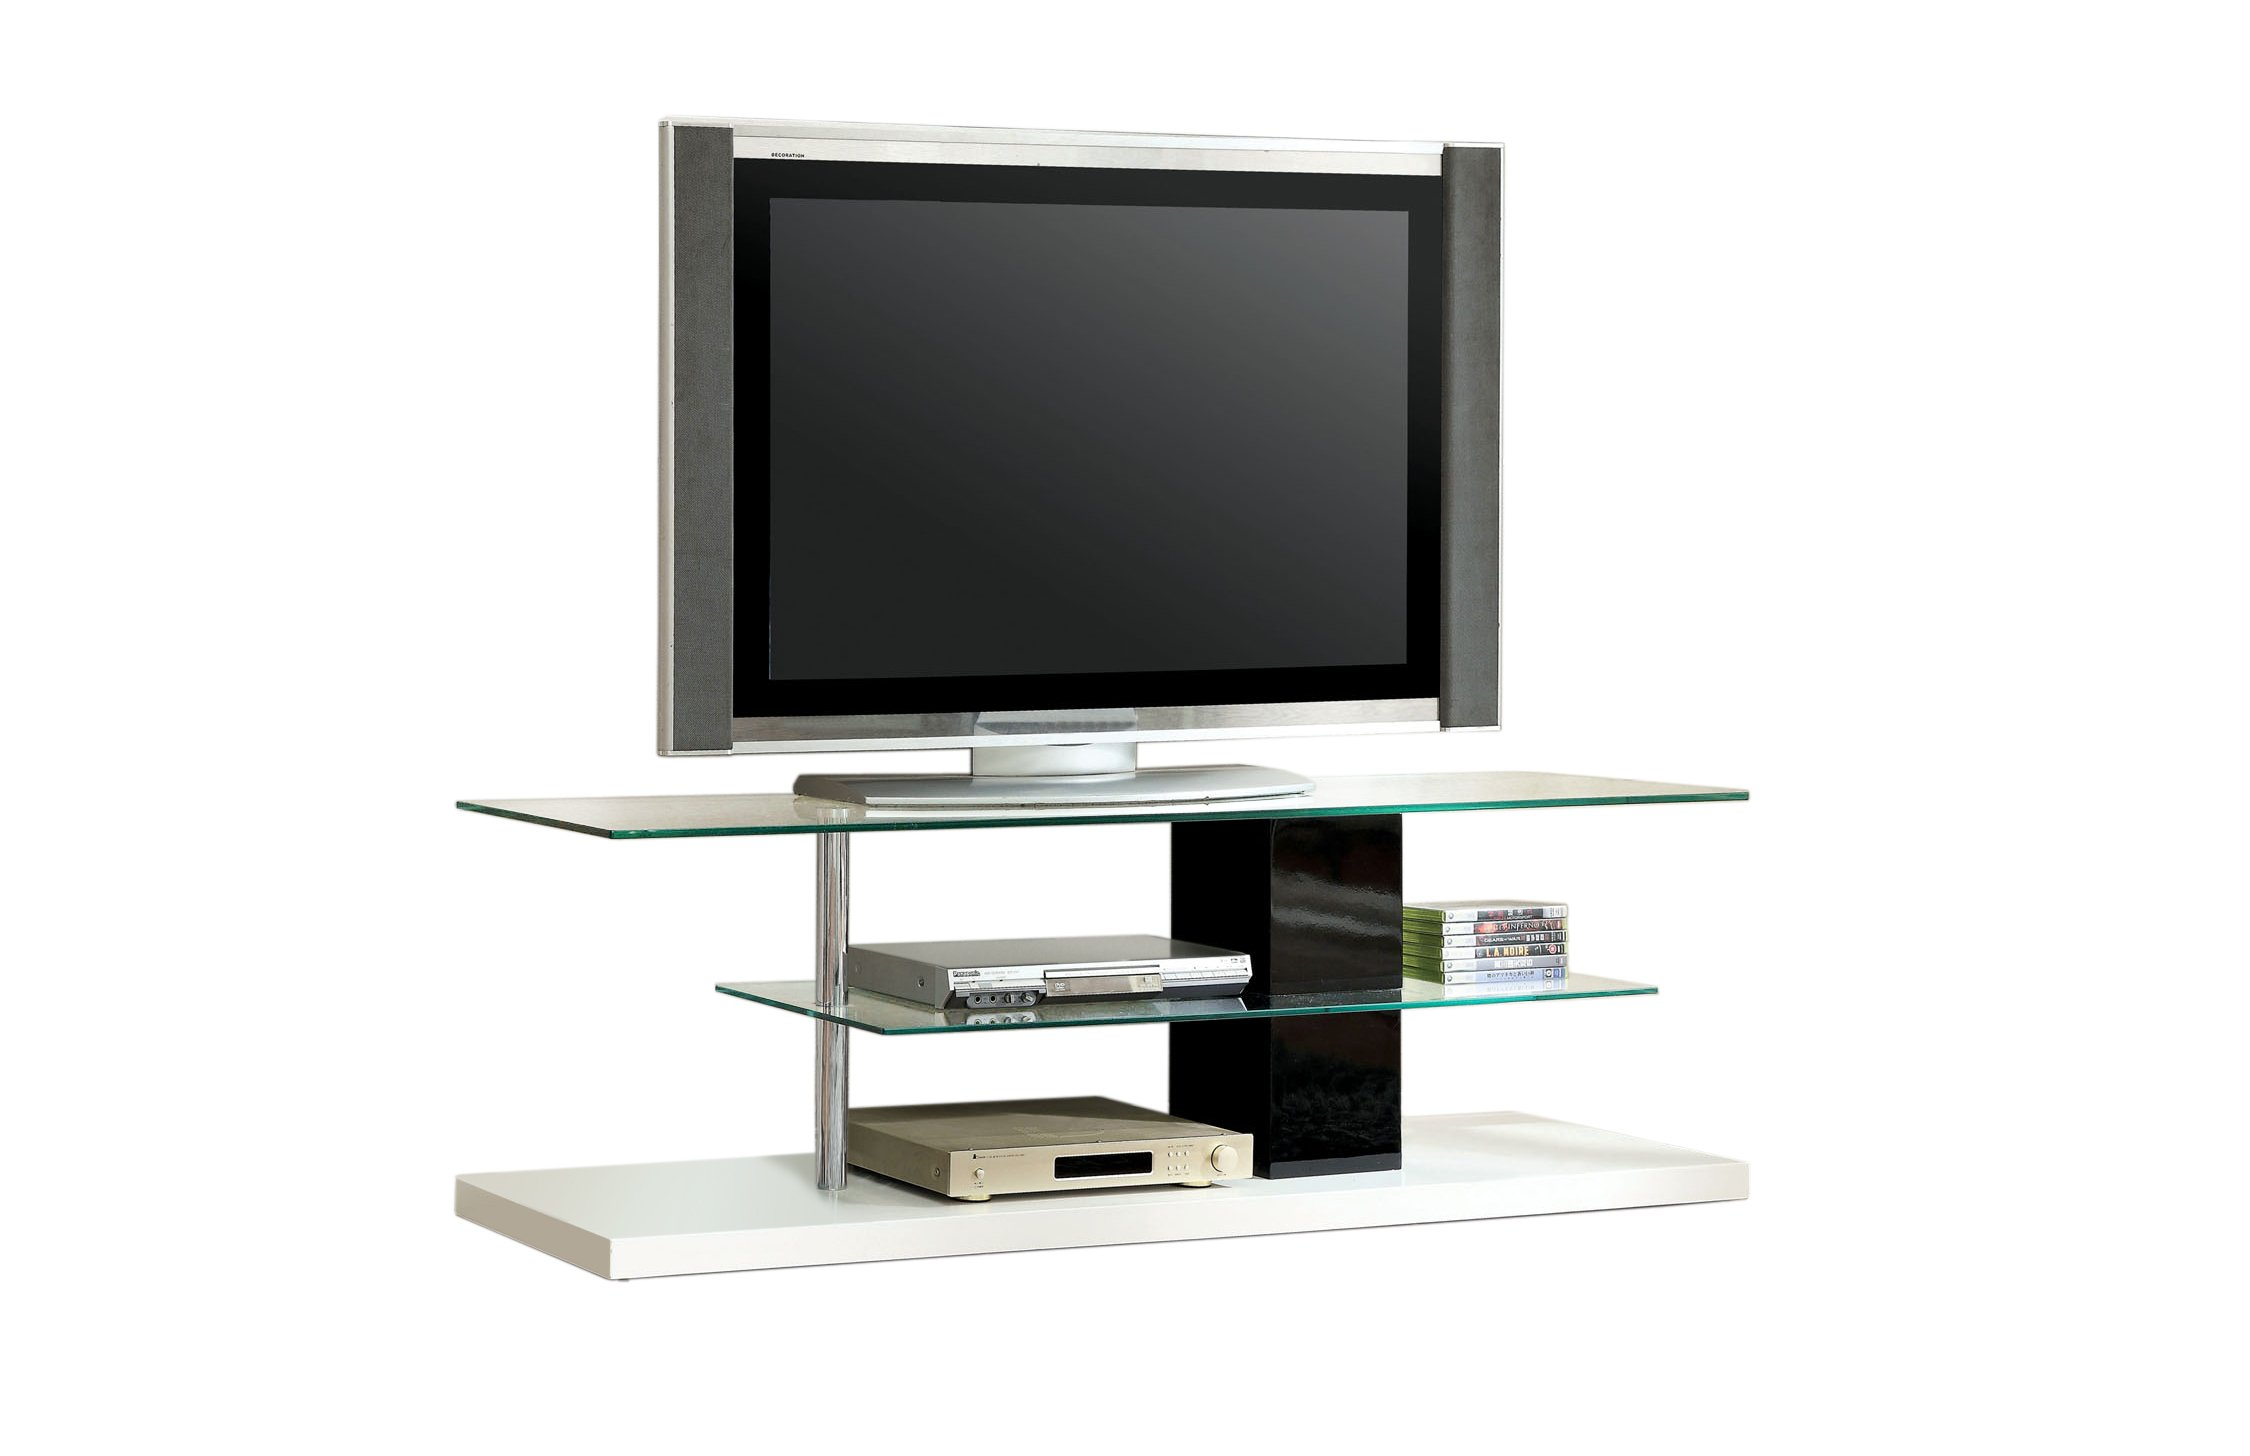 Furniture of America Havana Contemporary TV Console/Stand, Glossy, 63-Inch, Black and White